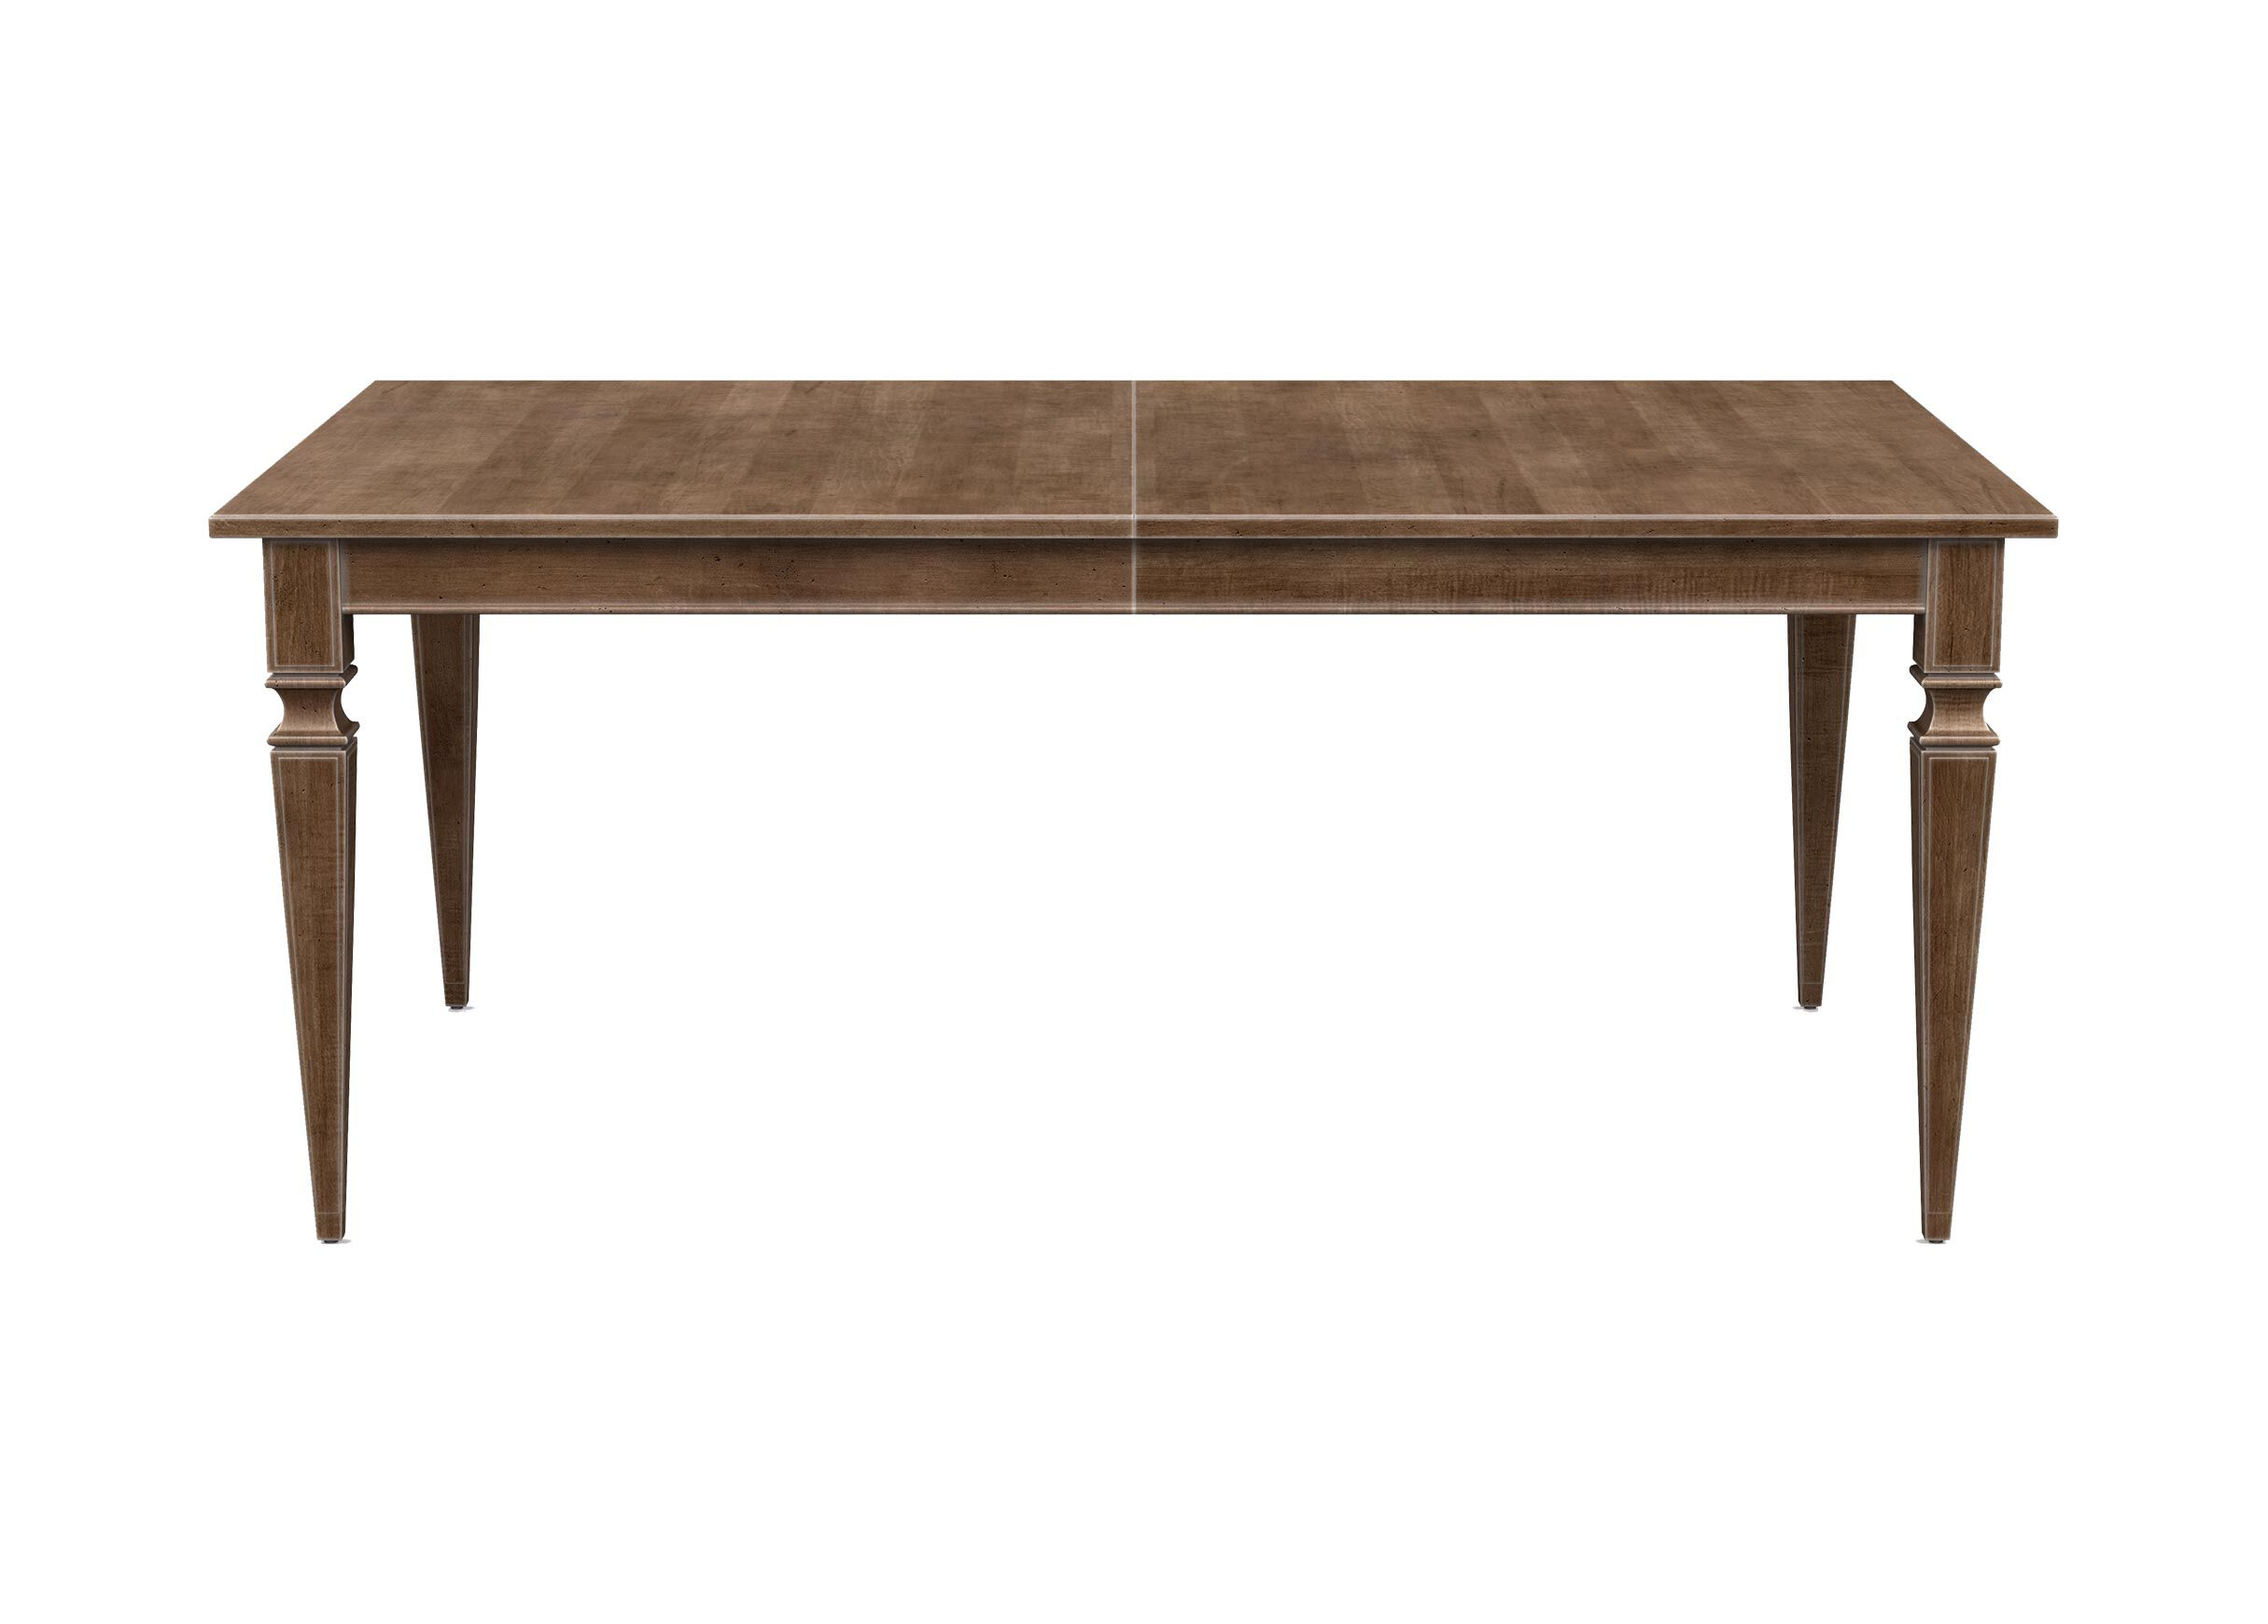 Avery Table Thevillasco - West elm avery coffee table